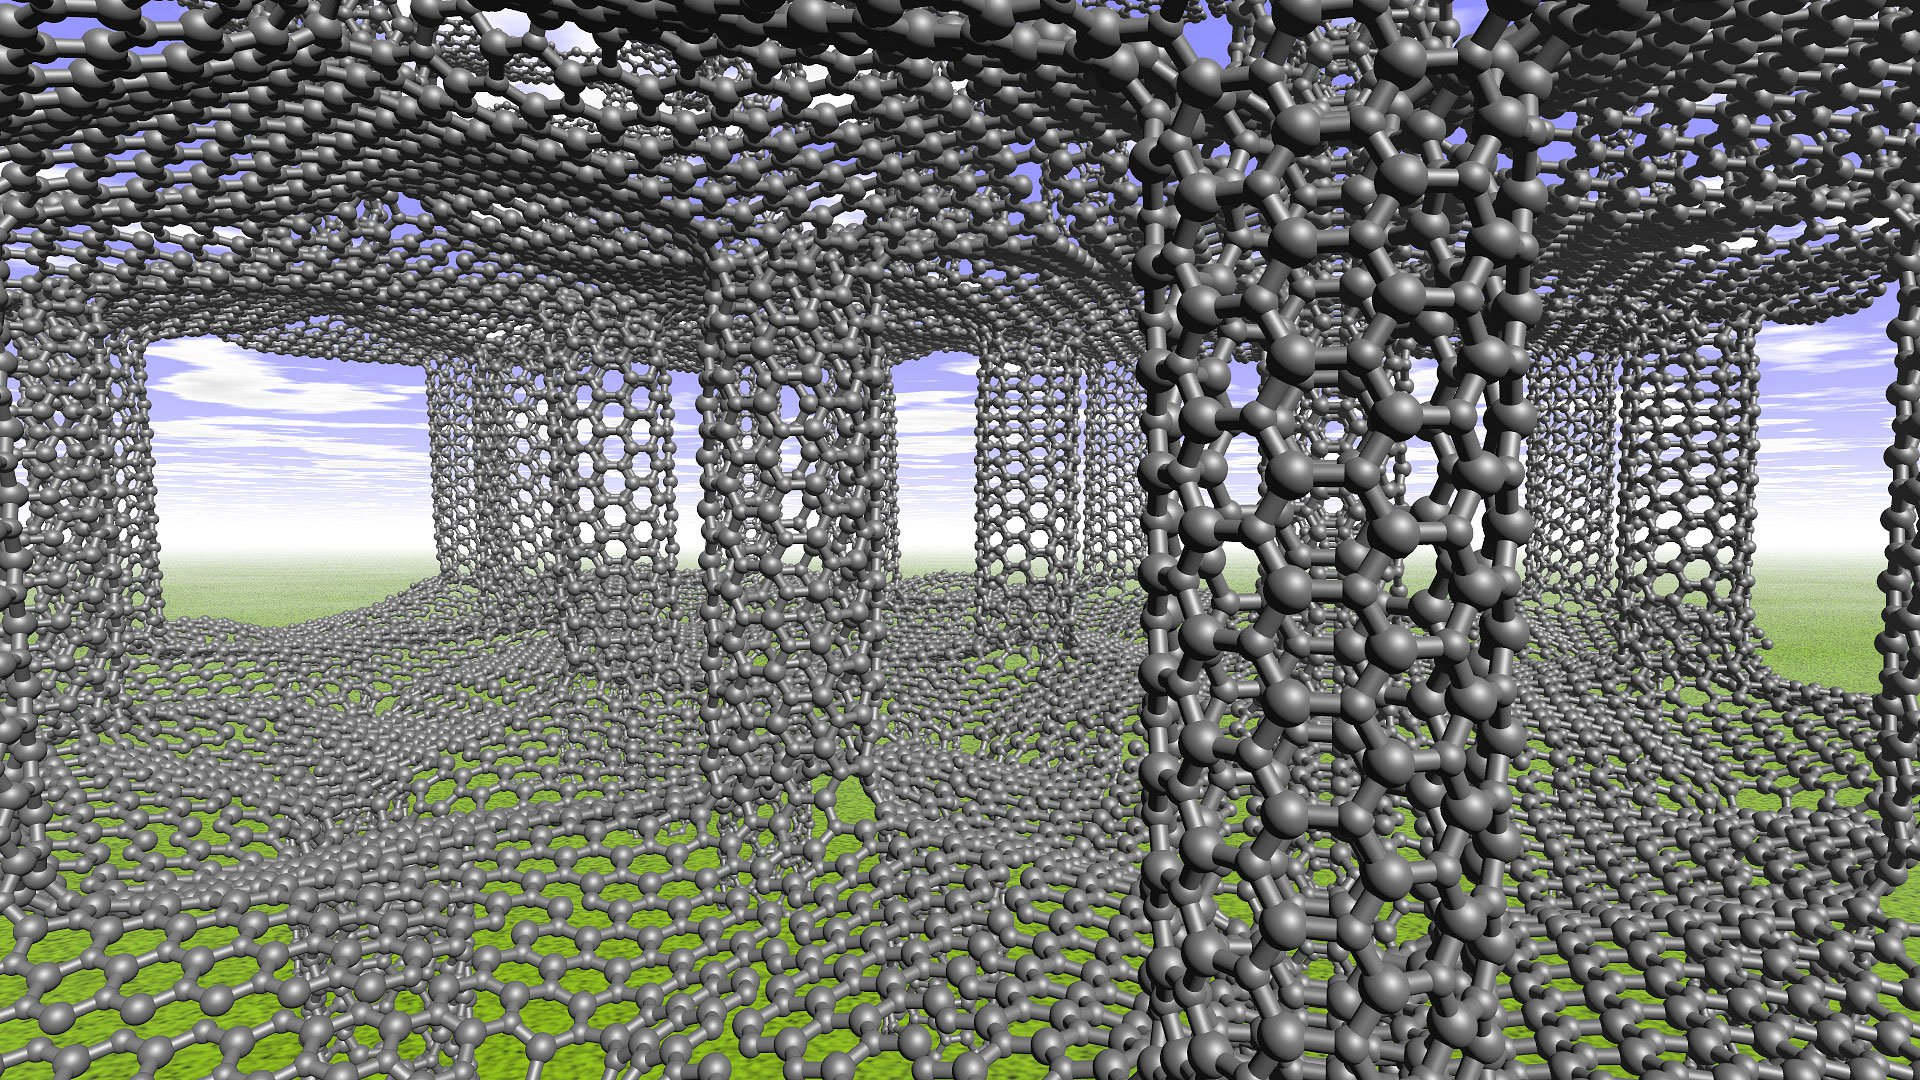 Graphene could solve five major problems of the world